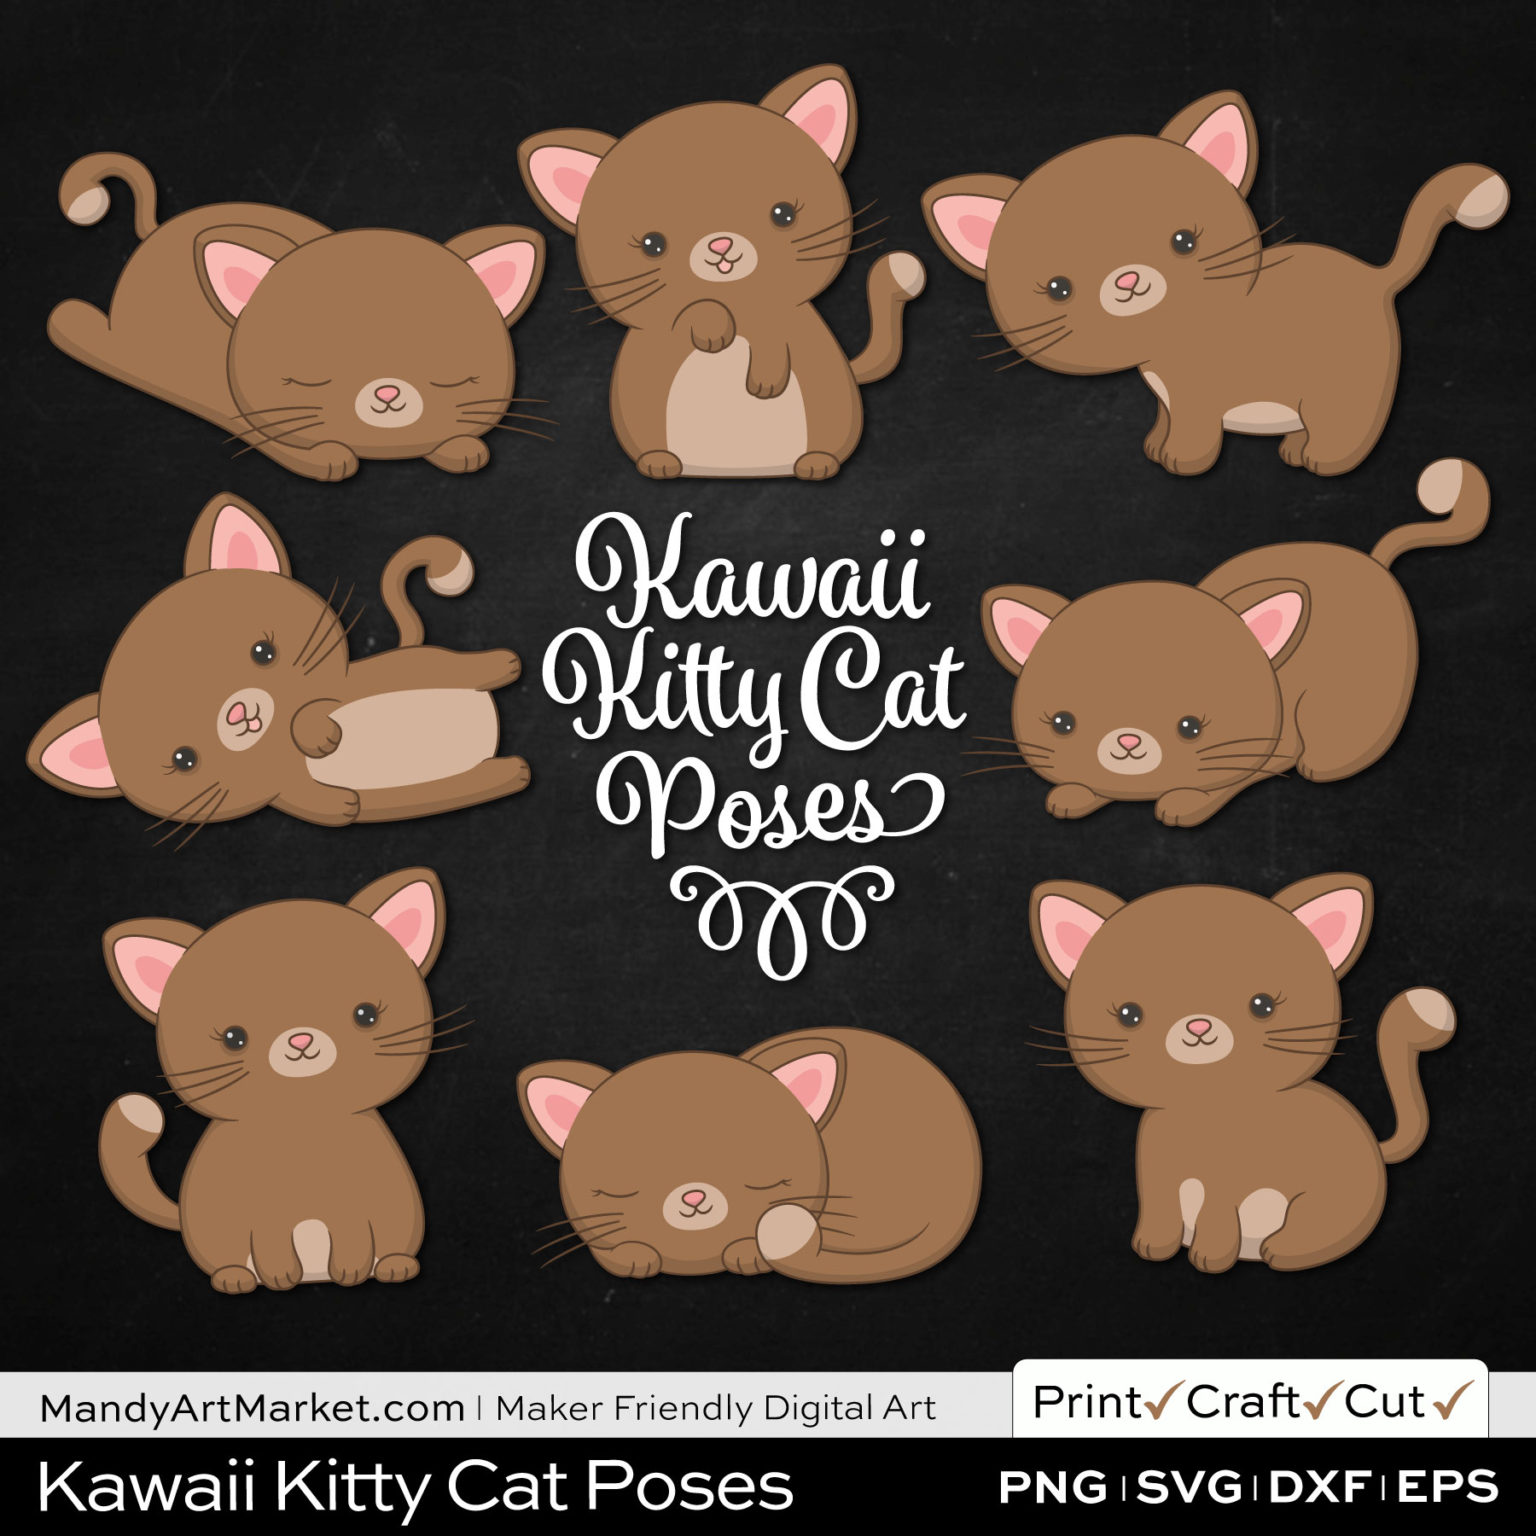 Coffee Brown Kawaii Kitty Cat Poses Clipart on Black Background